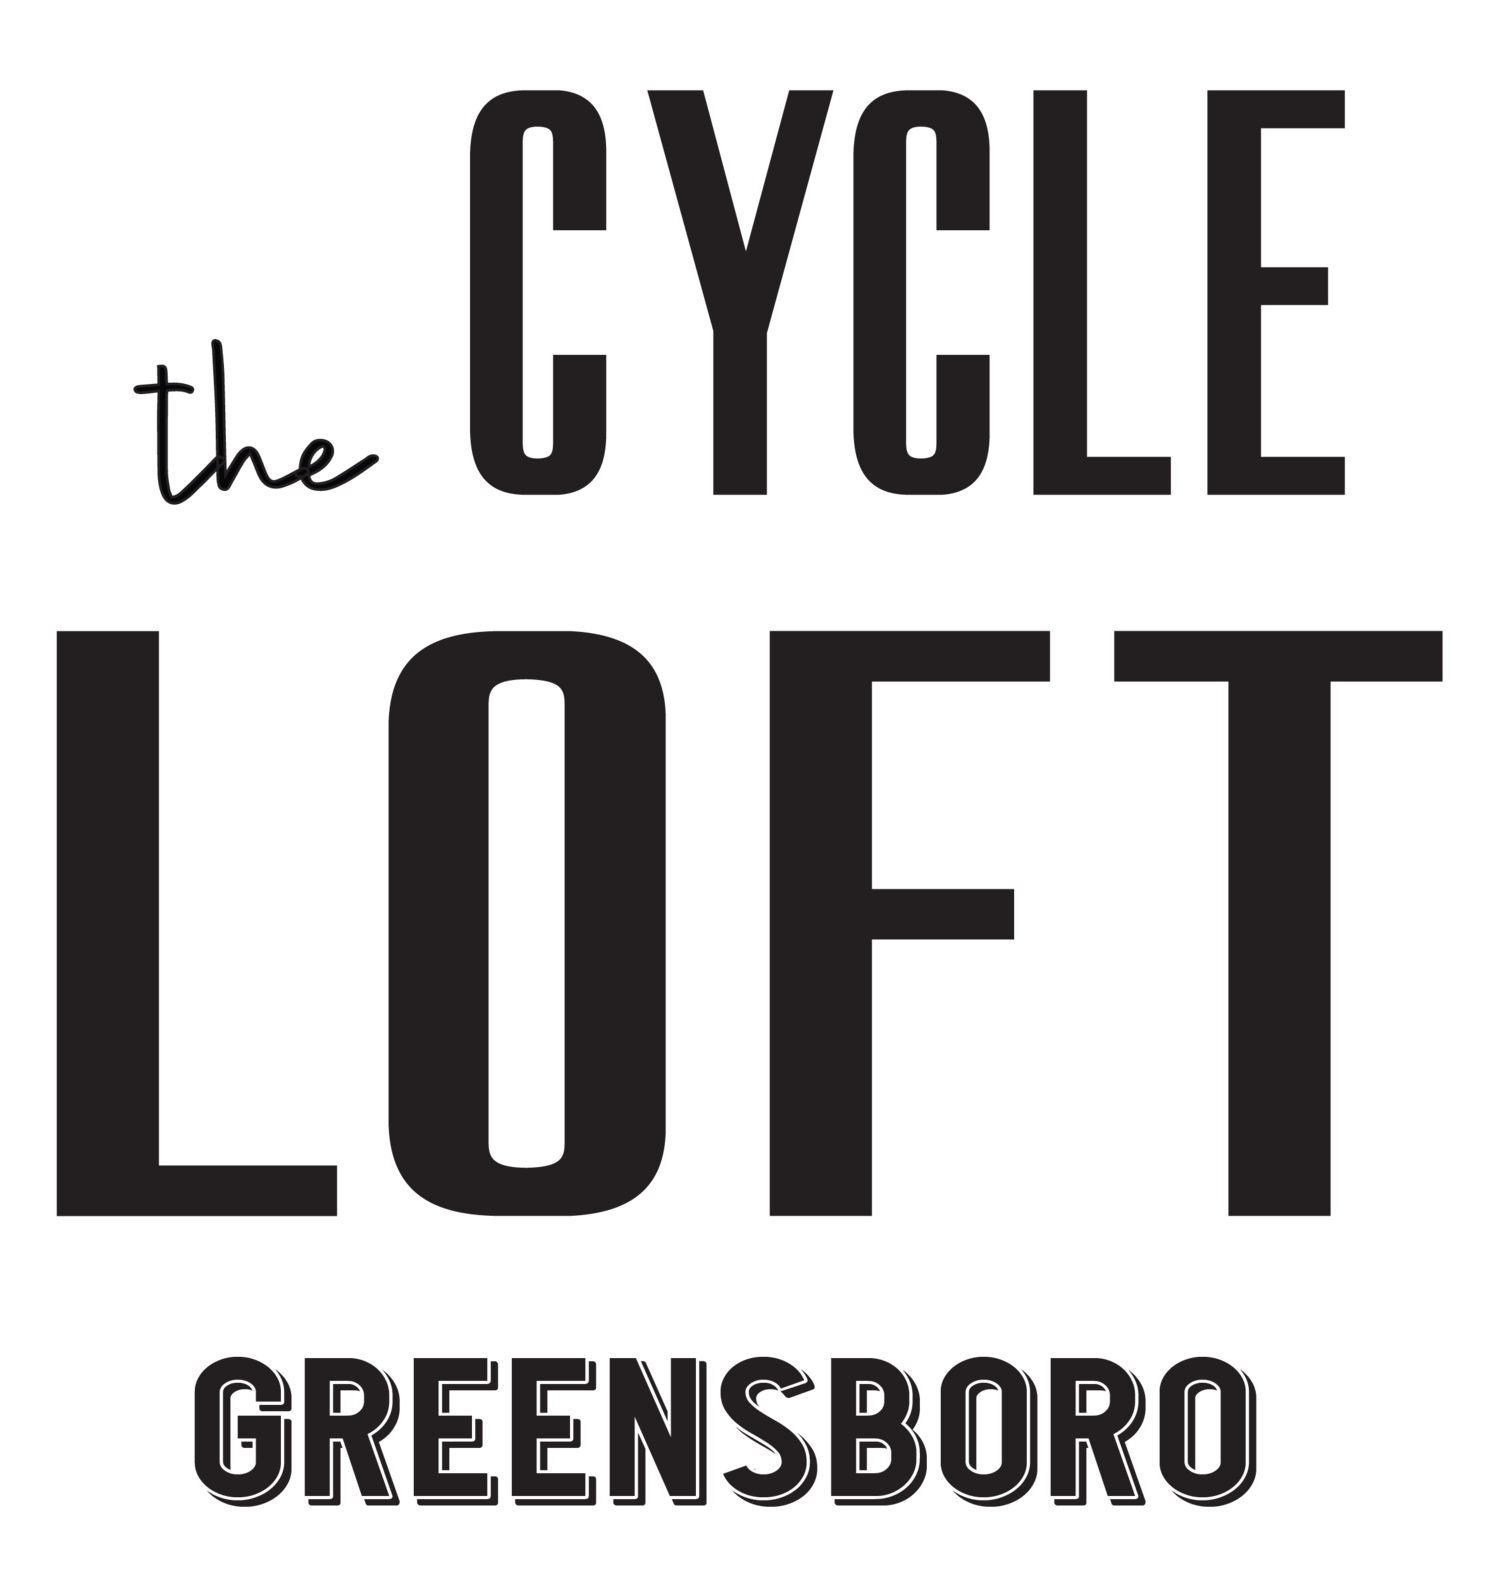 The Cycle Loft